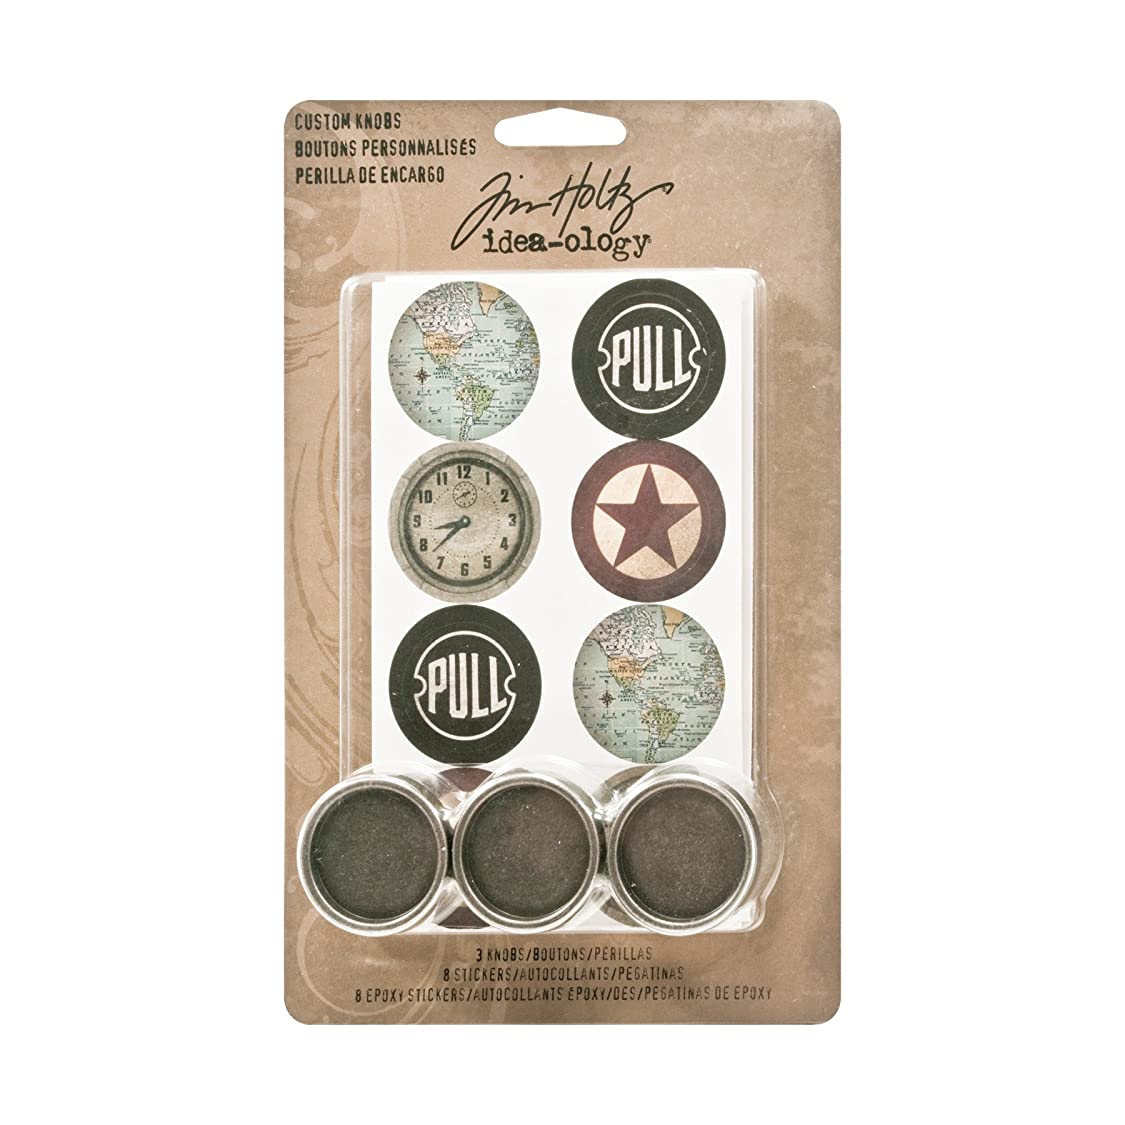 Metal Custom Knobs with Stickers by Tim Holtz Idea-ology, 3 per Pack, 1-1/4 Inch, 16 Stickers, Assorted Colors, TH93124 ew55680603625345